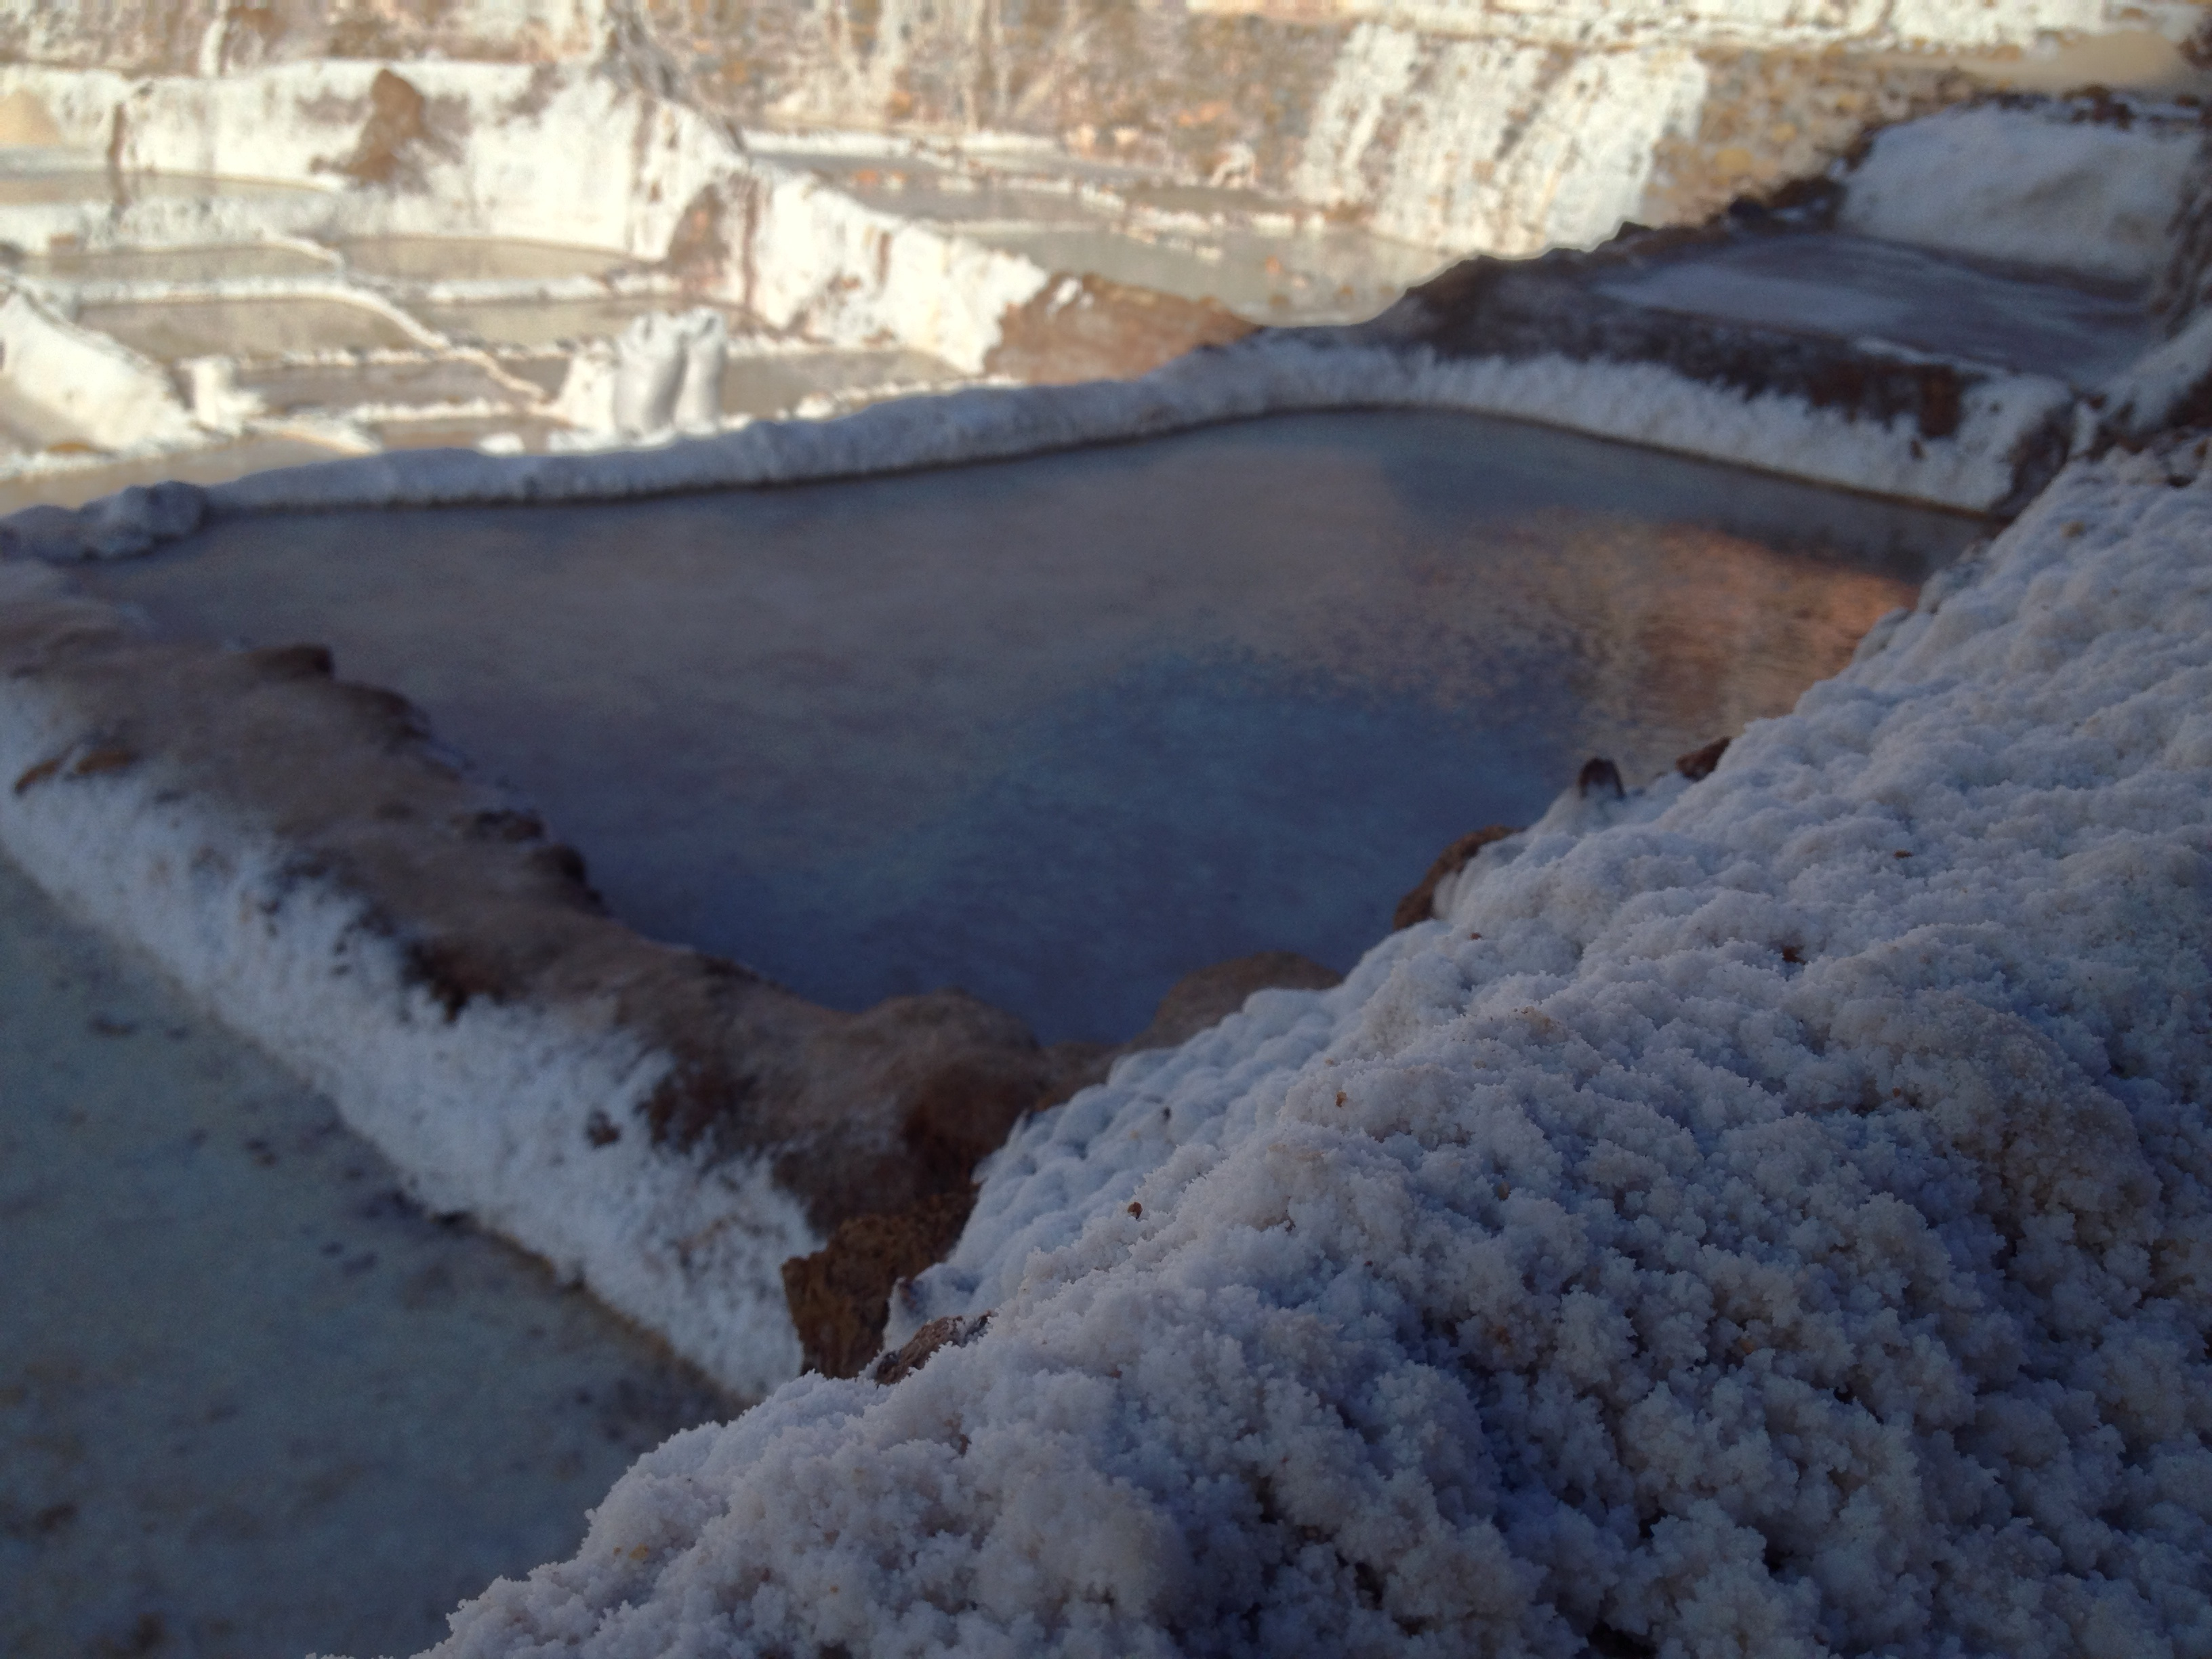 Thes salt ponds have been around for hundreds of years, all this salt comes from the smallest salty stream